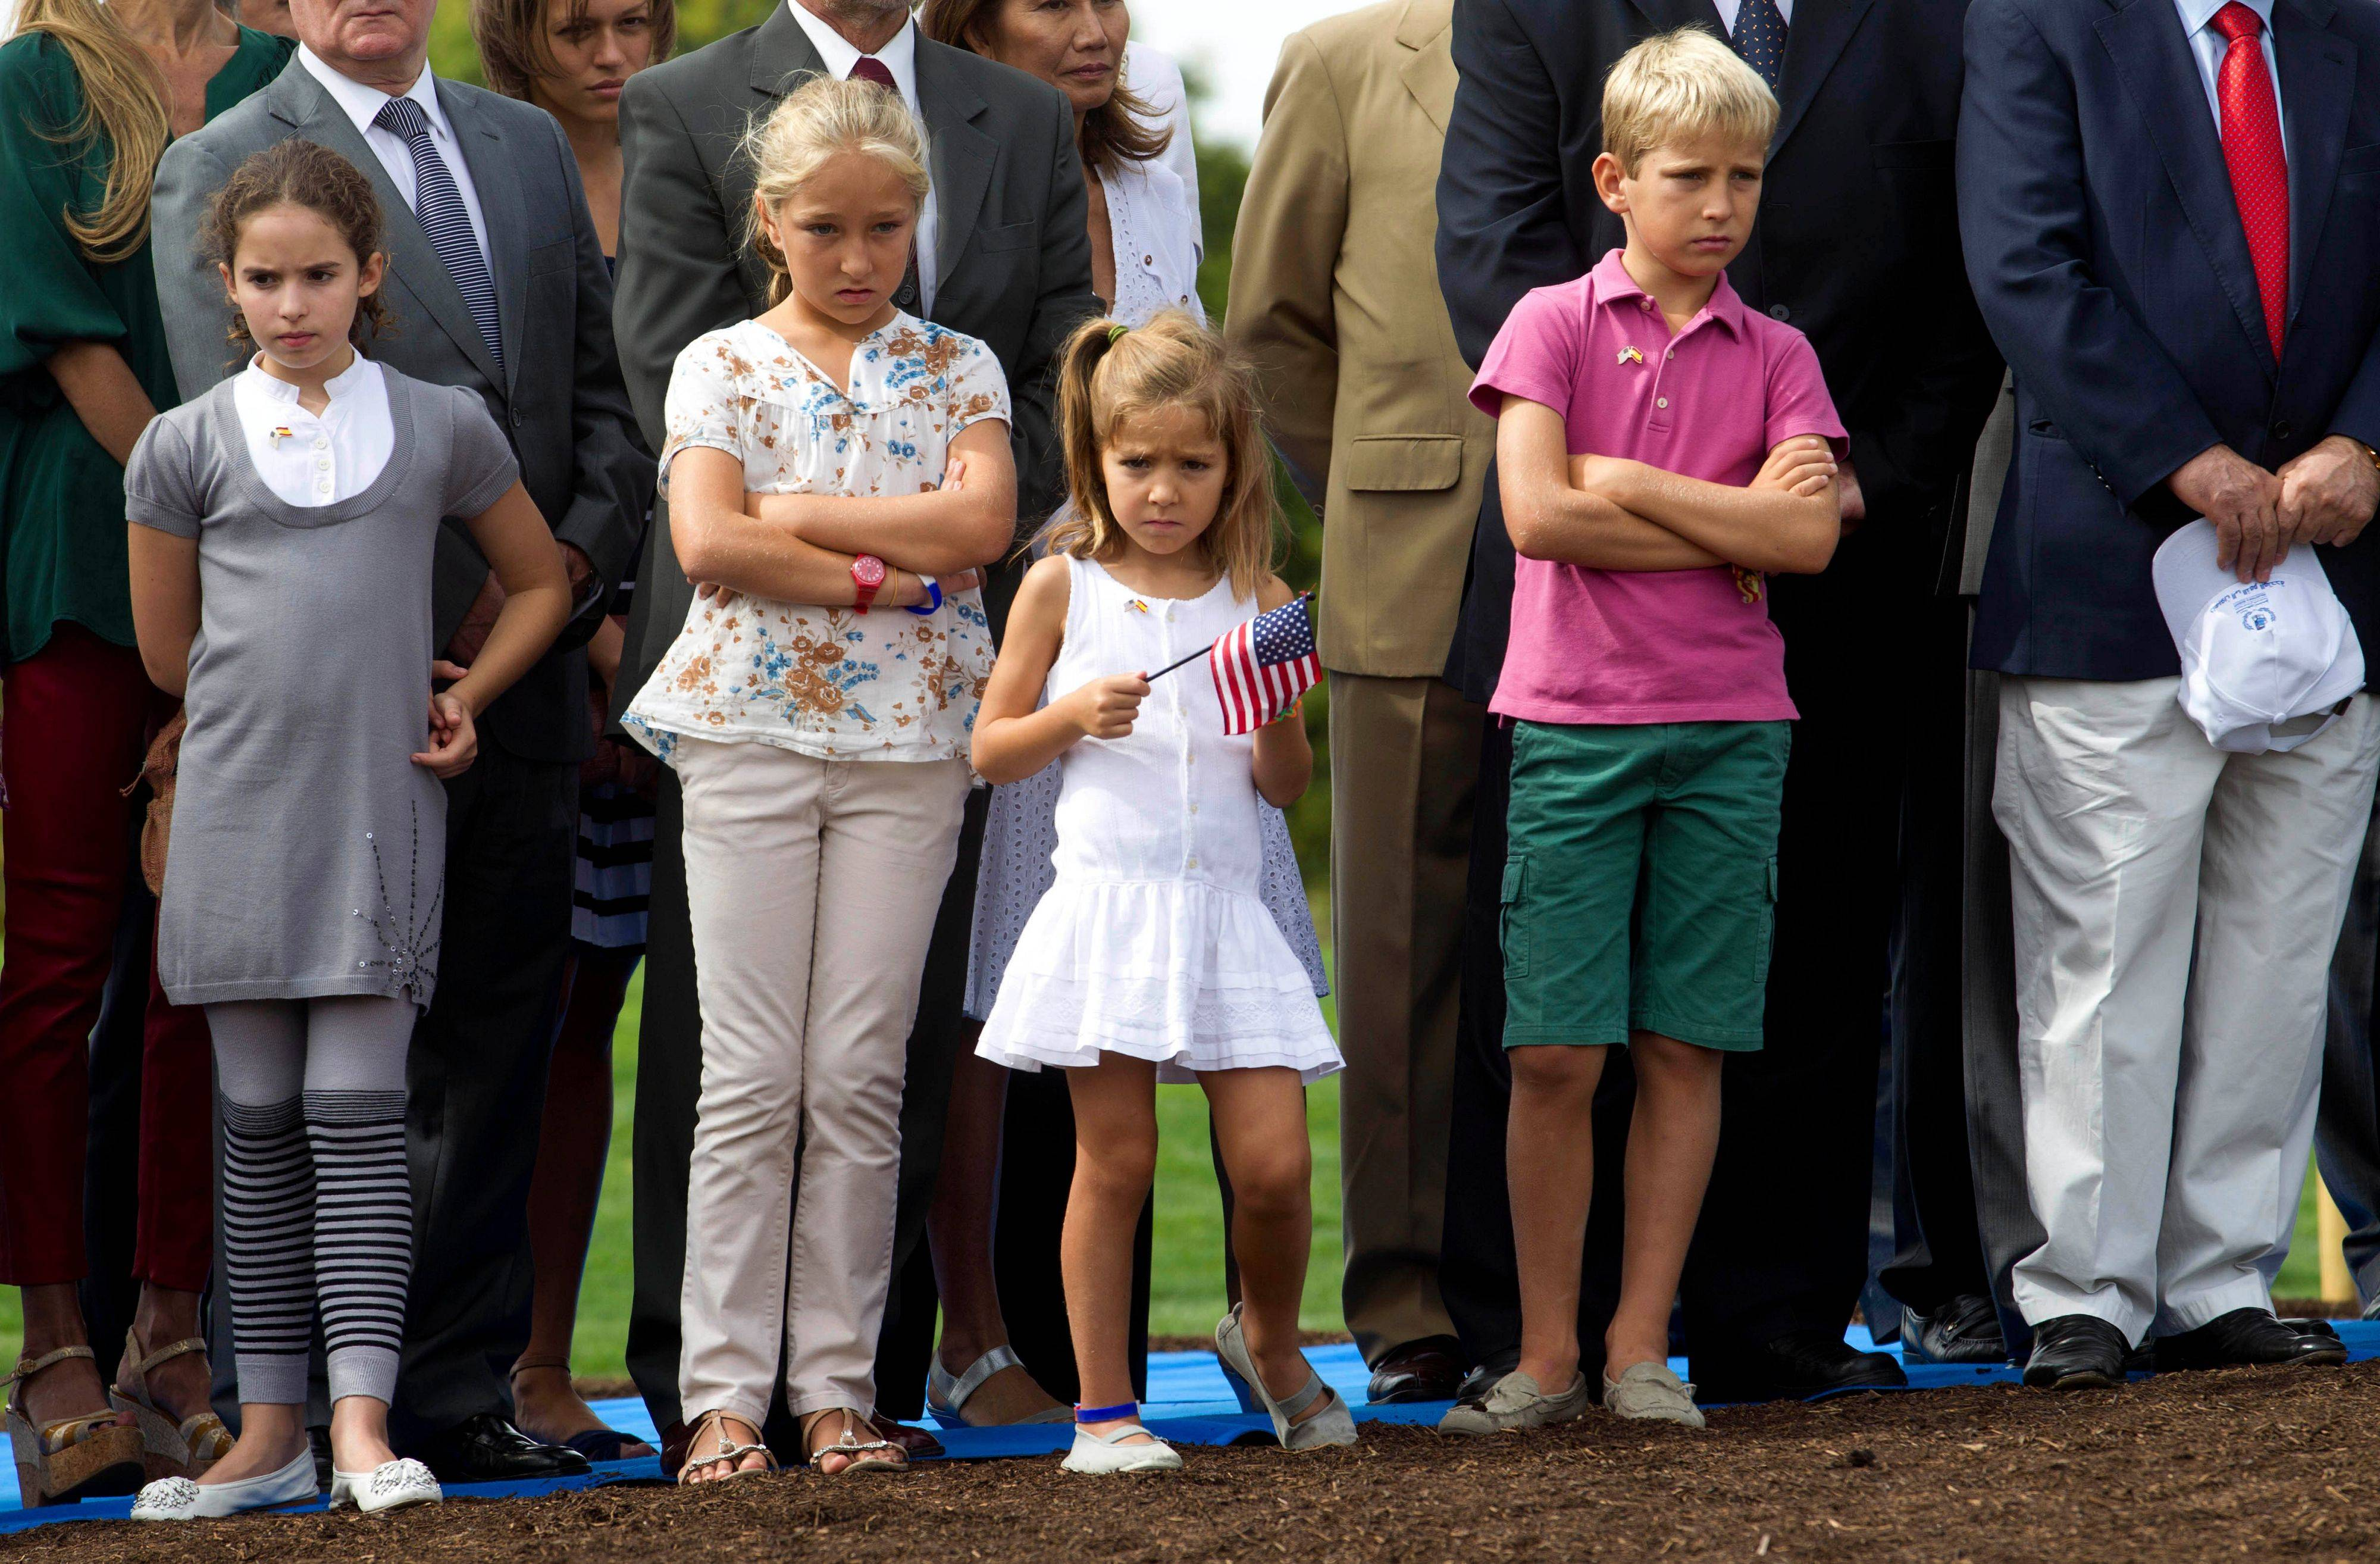 Children stand during a commemorative ceremony in Madrid Sunday Sept. 11, 2011 to mark the tenth anniversary of the terrorist attacks in New York, Washington D.C. and Pennsylvania.